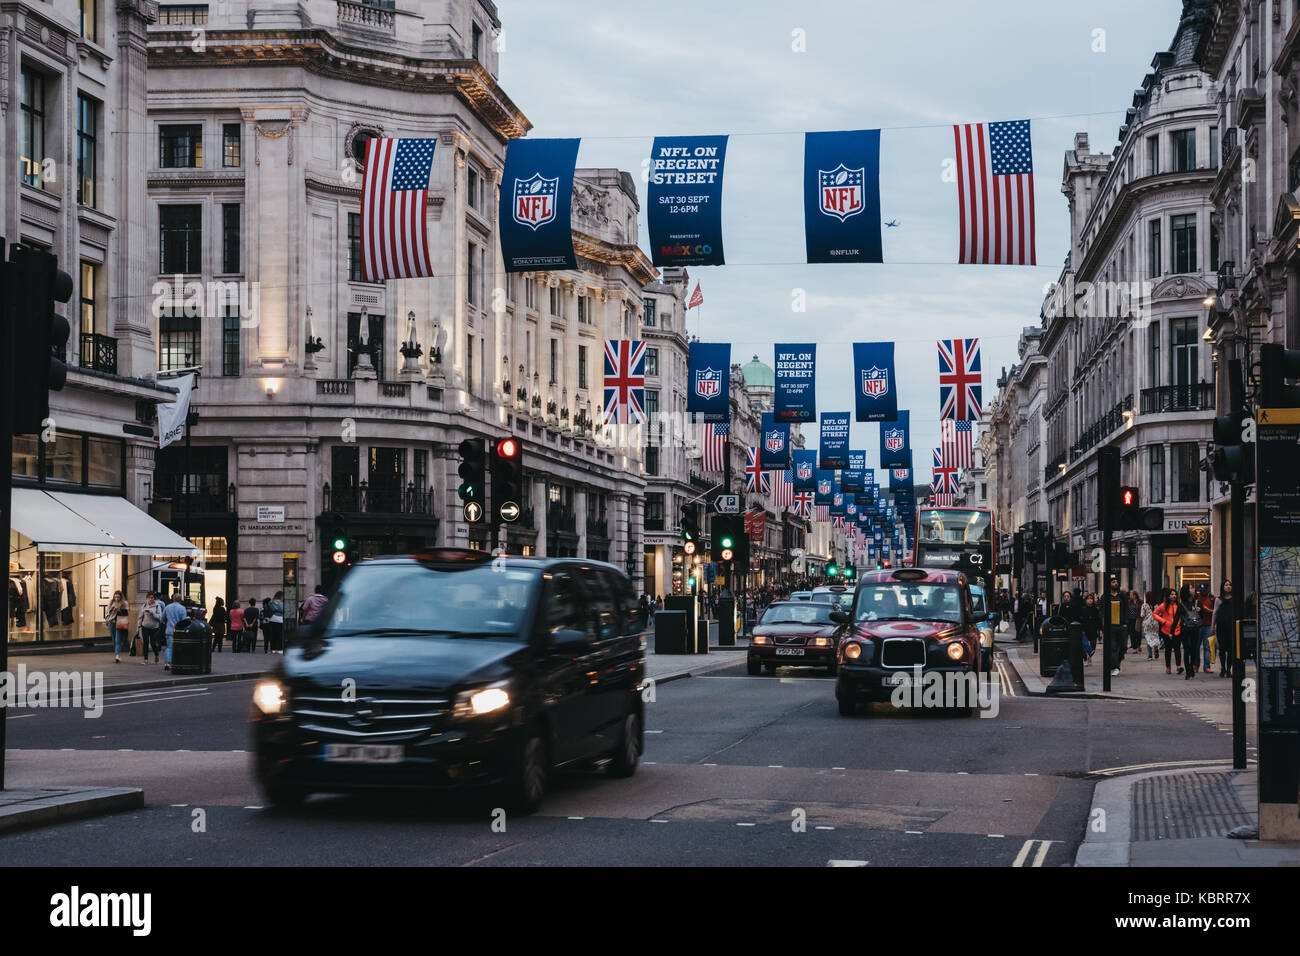 Black taxi and cars on Regent Street, London. The street is decorated with NFL flags to celebrate the event and - Stock Image